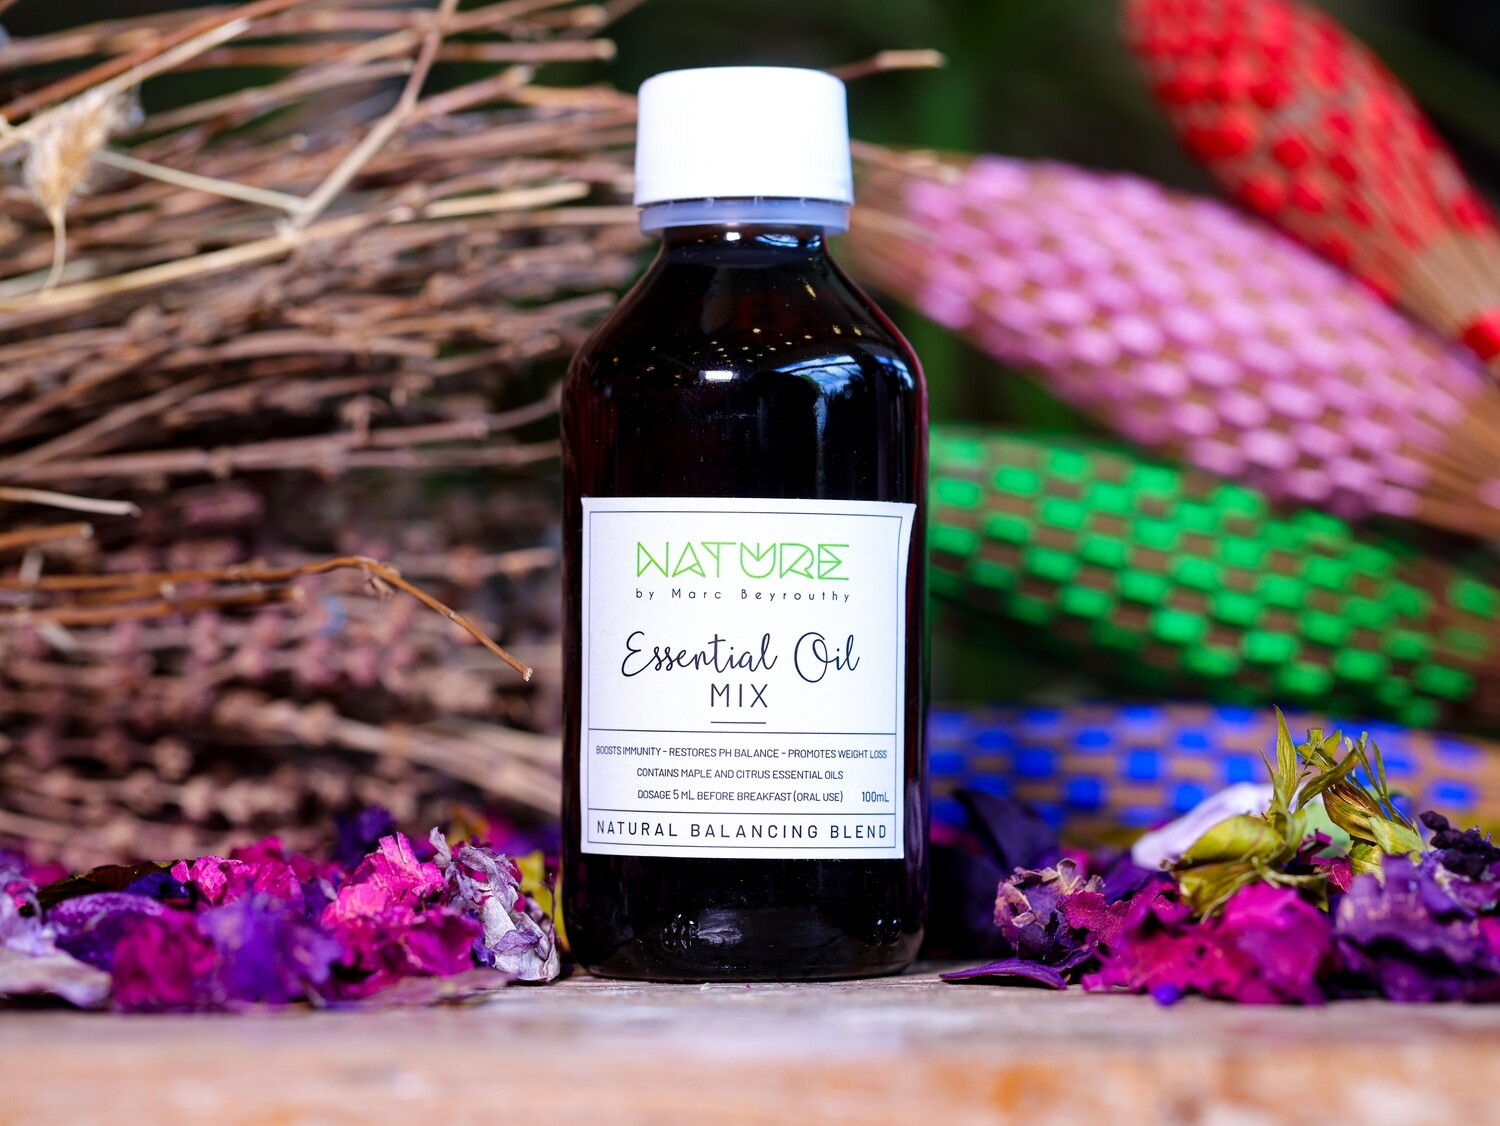 Essential Oil Balancing Blend (Bottle) - Nature by Marc Beyrouthy